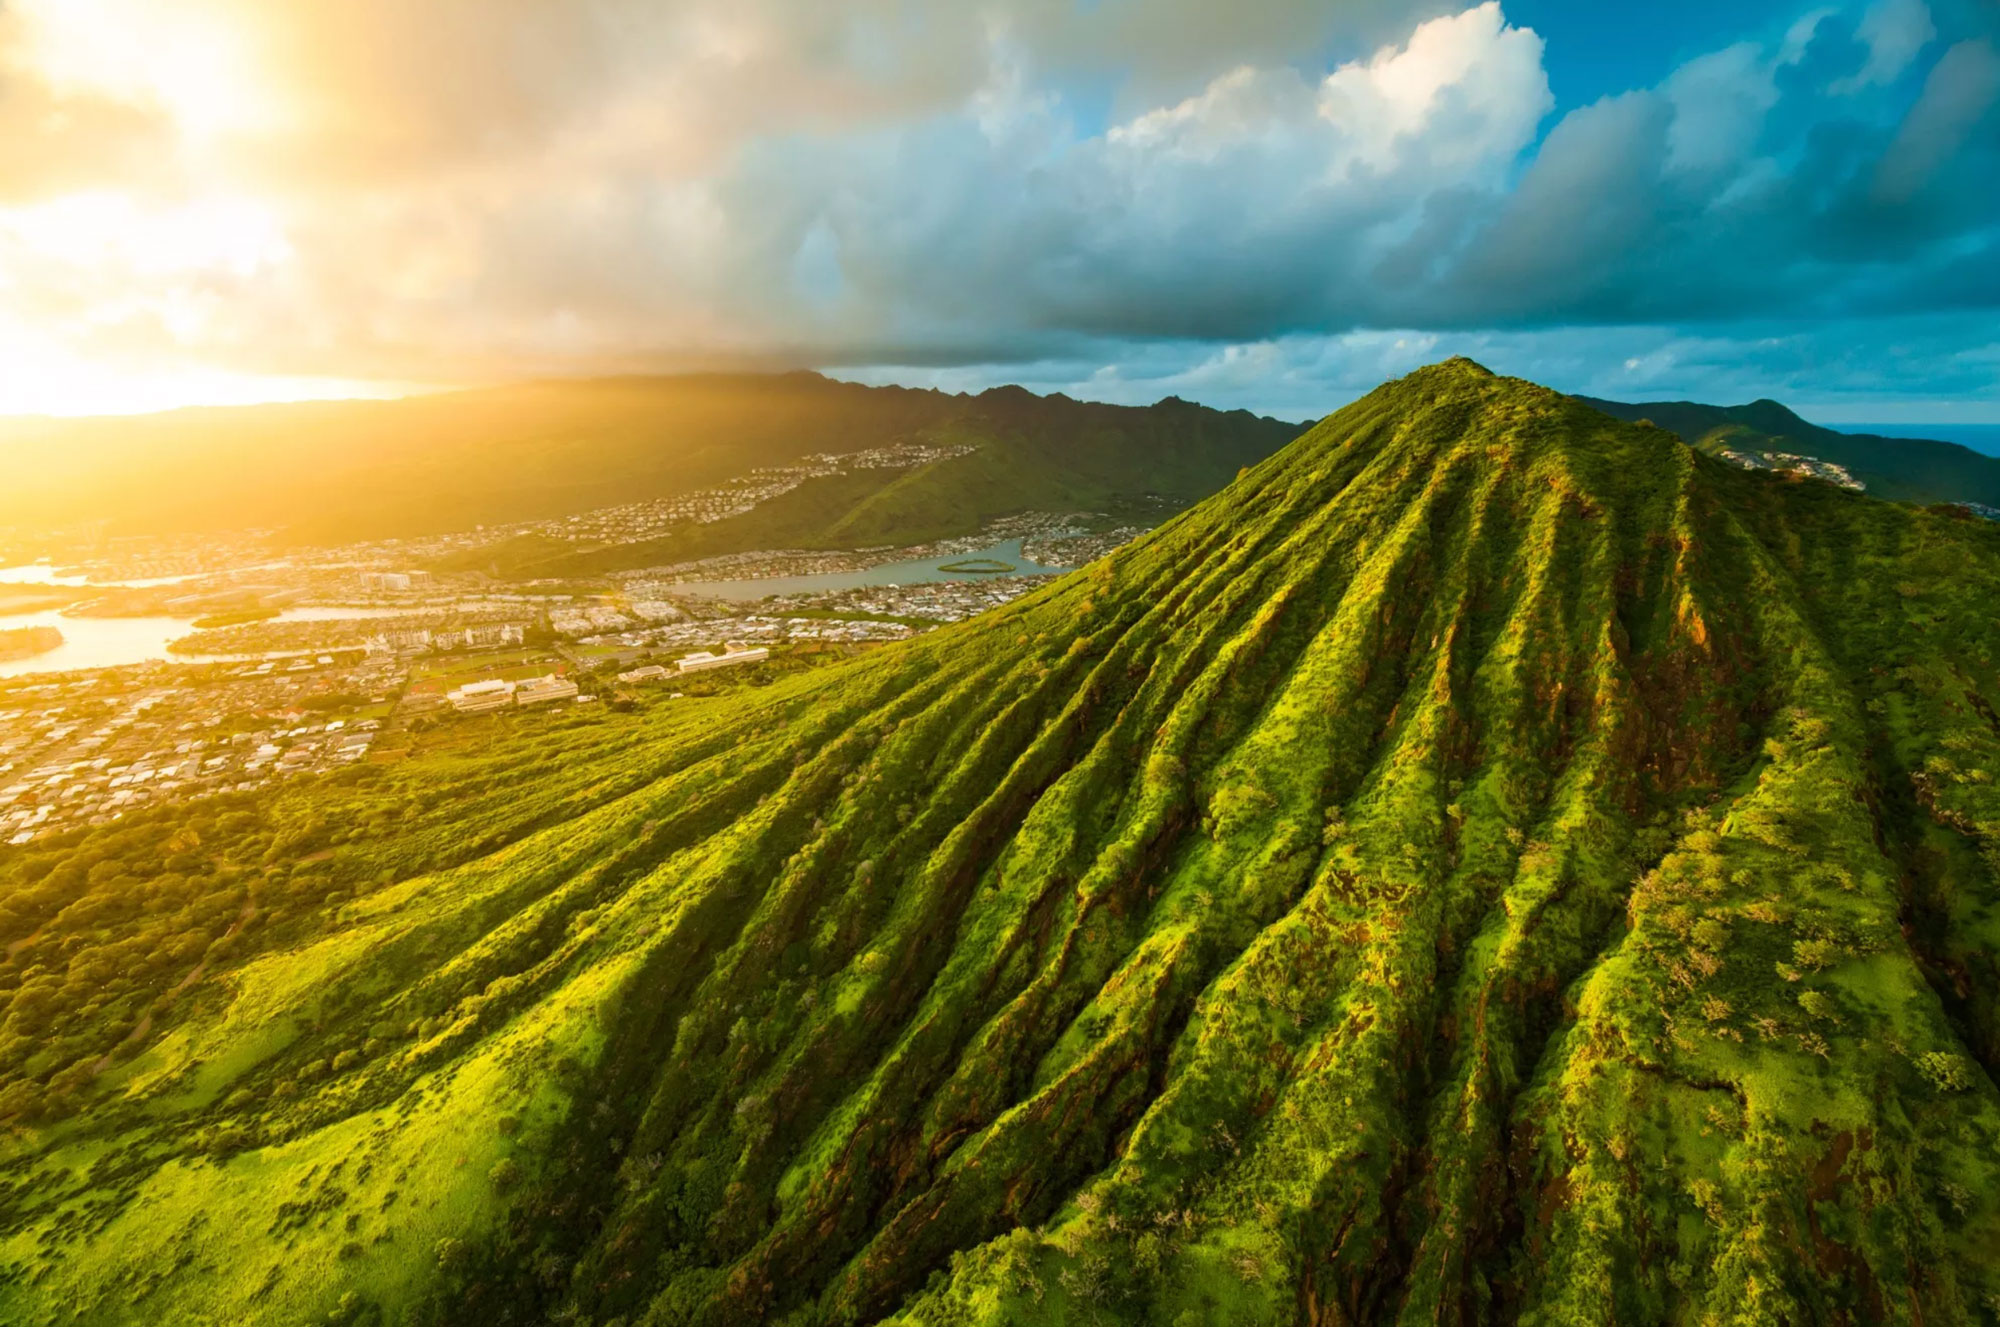 Hawaii Loa Ridge - Meticulously landscaped roads and spectacular views amount to the most coveted gated communities..